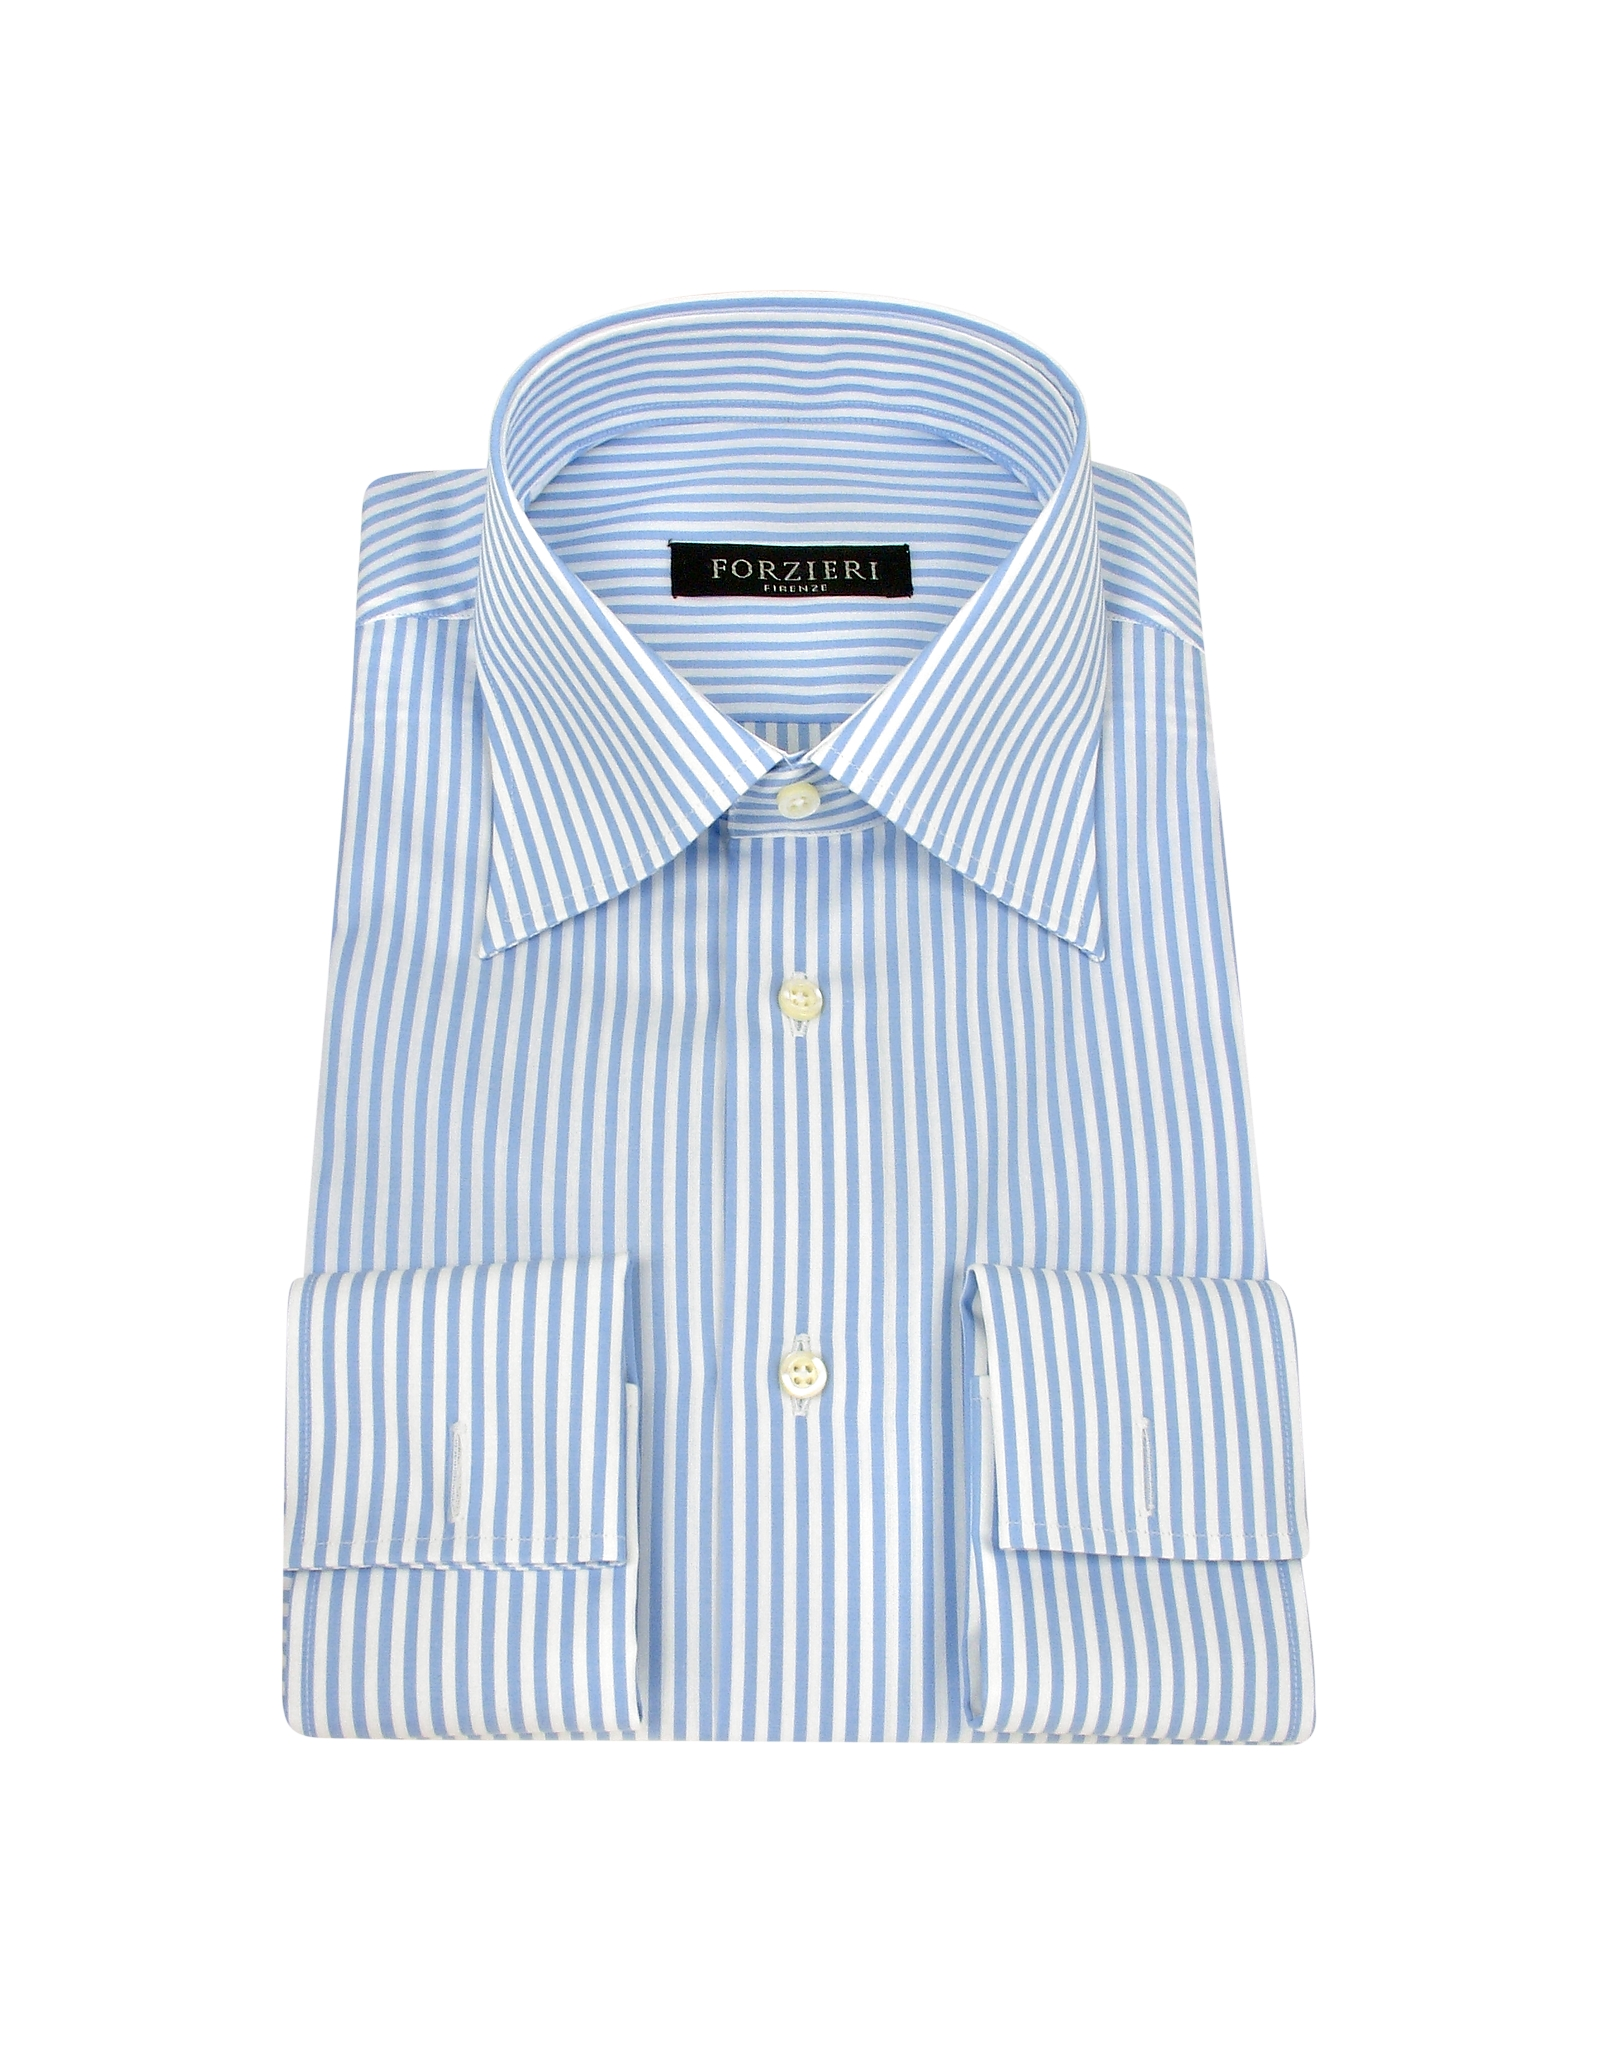 From black and white to white and blue, a striped shirt is a simple way to introduce more flair to your attire. Depending on the sizing and spacing of the stripes as well as the colour, whether it is navy blue and white or classic black and white, a striped shirt can be as bold or as simple as you like.